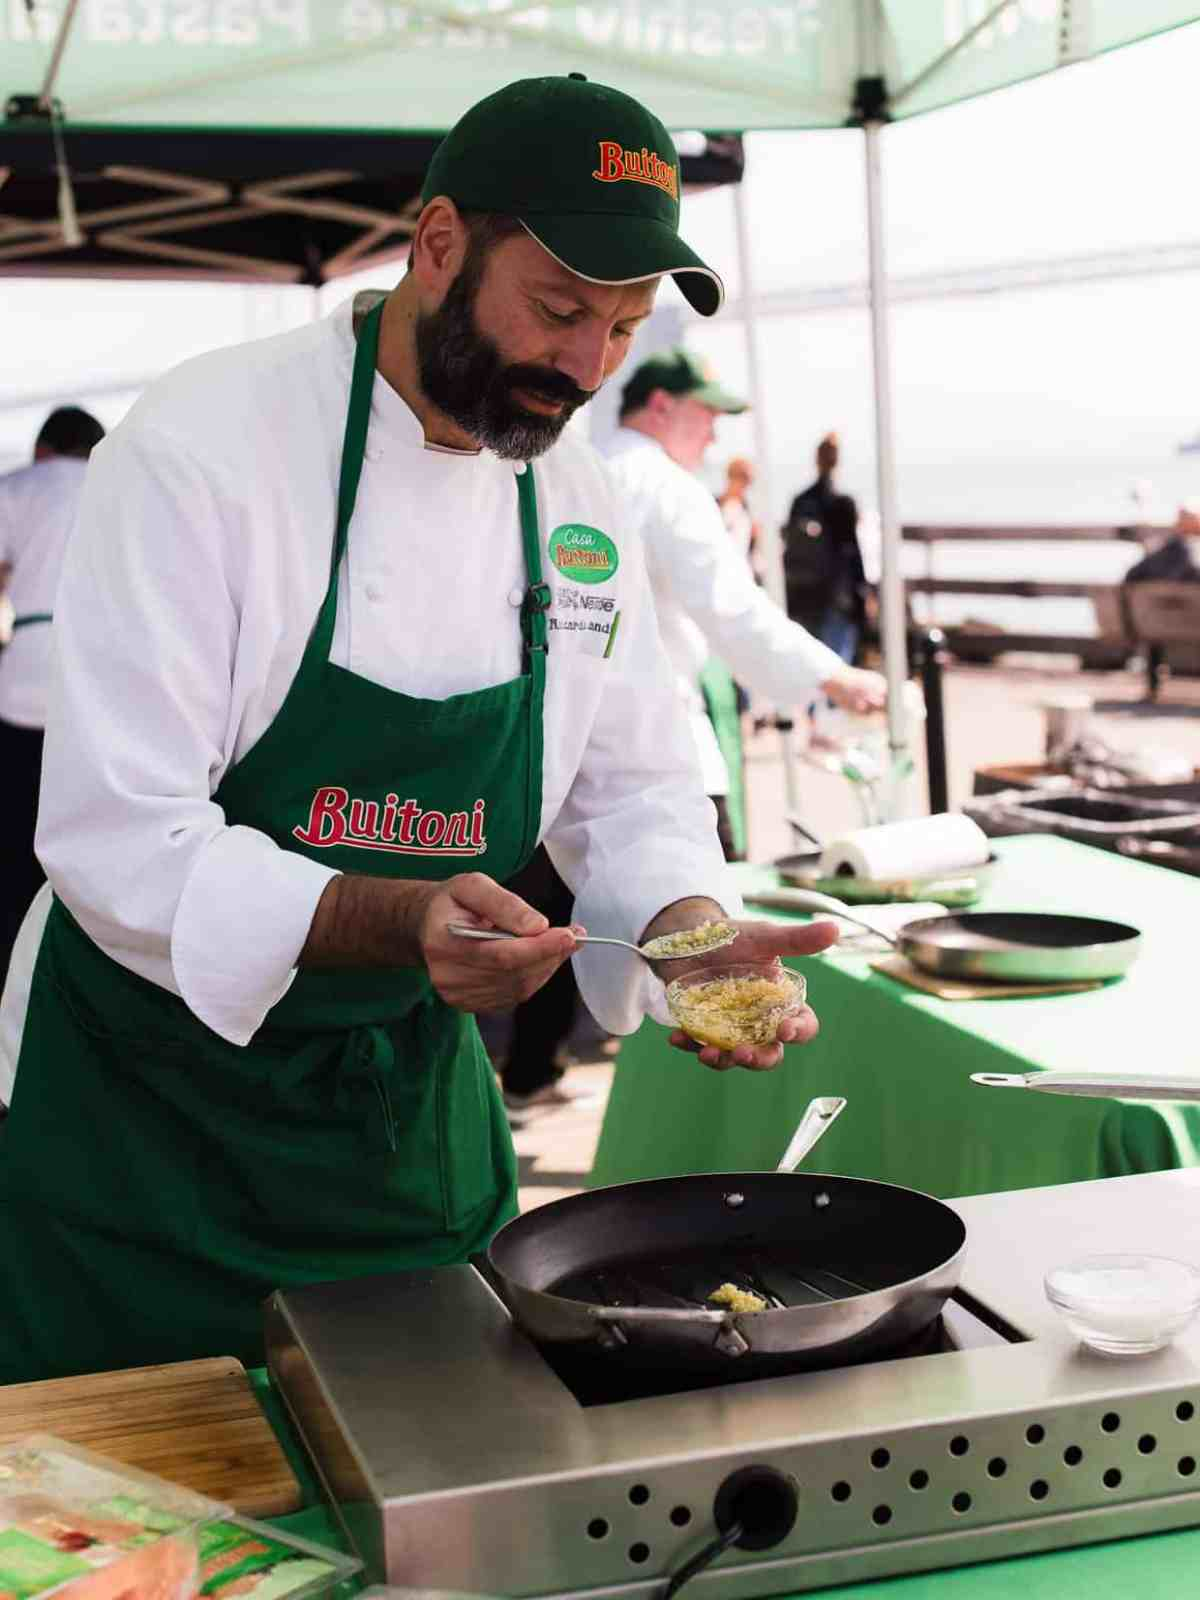 Buitoni Chef Riccardo Landi transforming Buitoni refrigerated vegetable and herb infused pastas into a simple dish using ingredients sourced from the farmer's market.